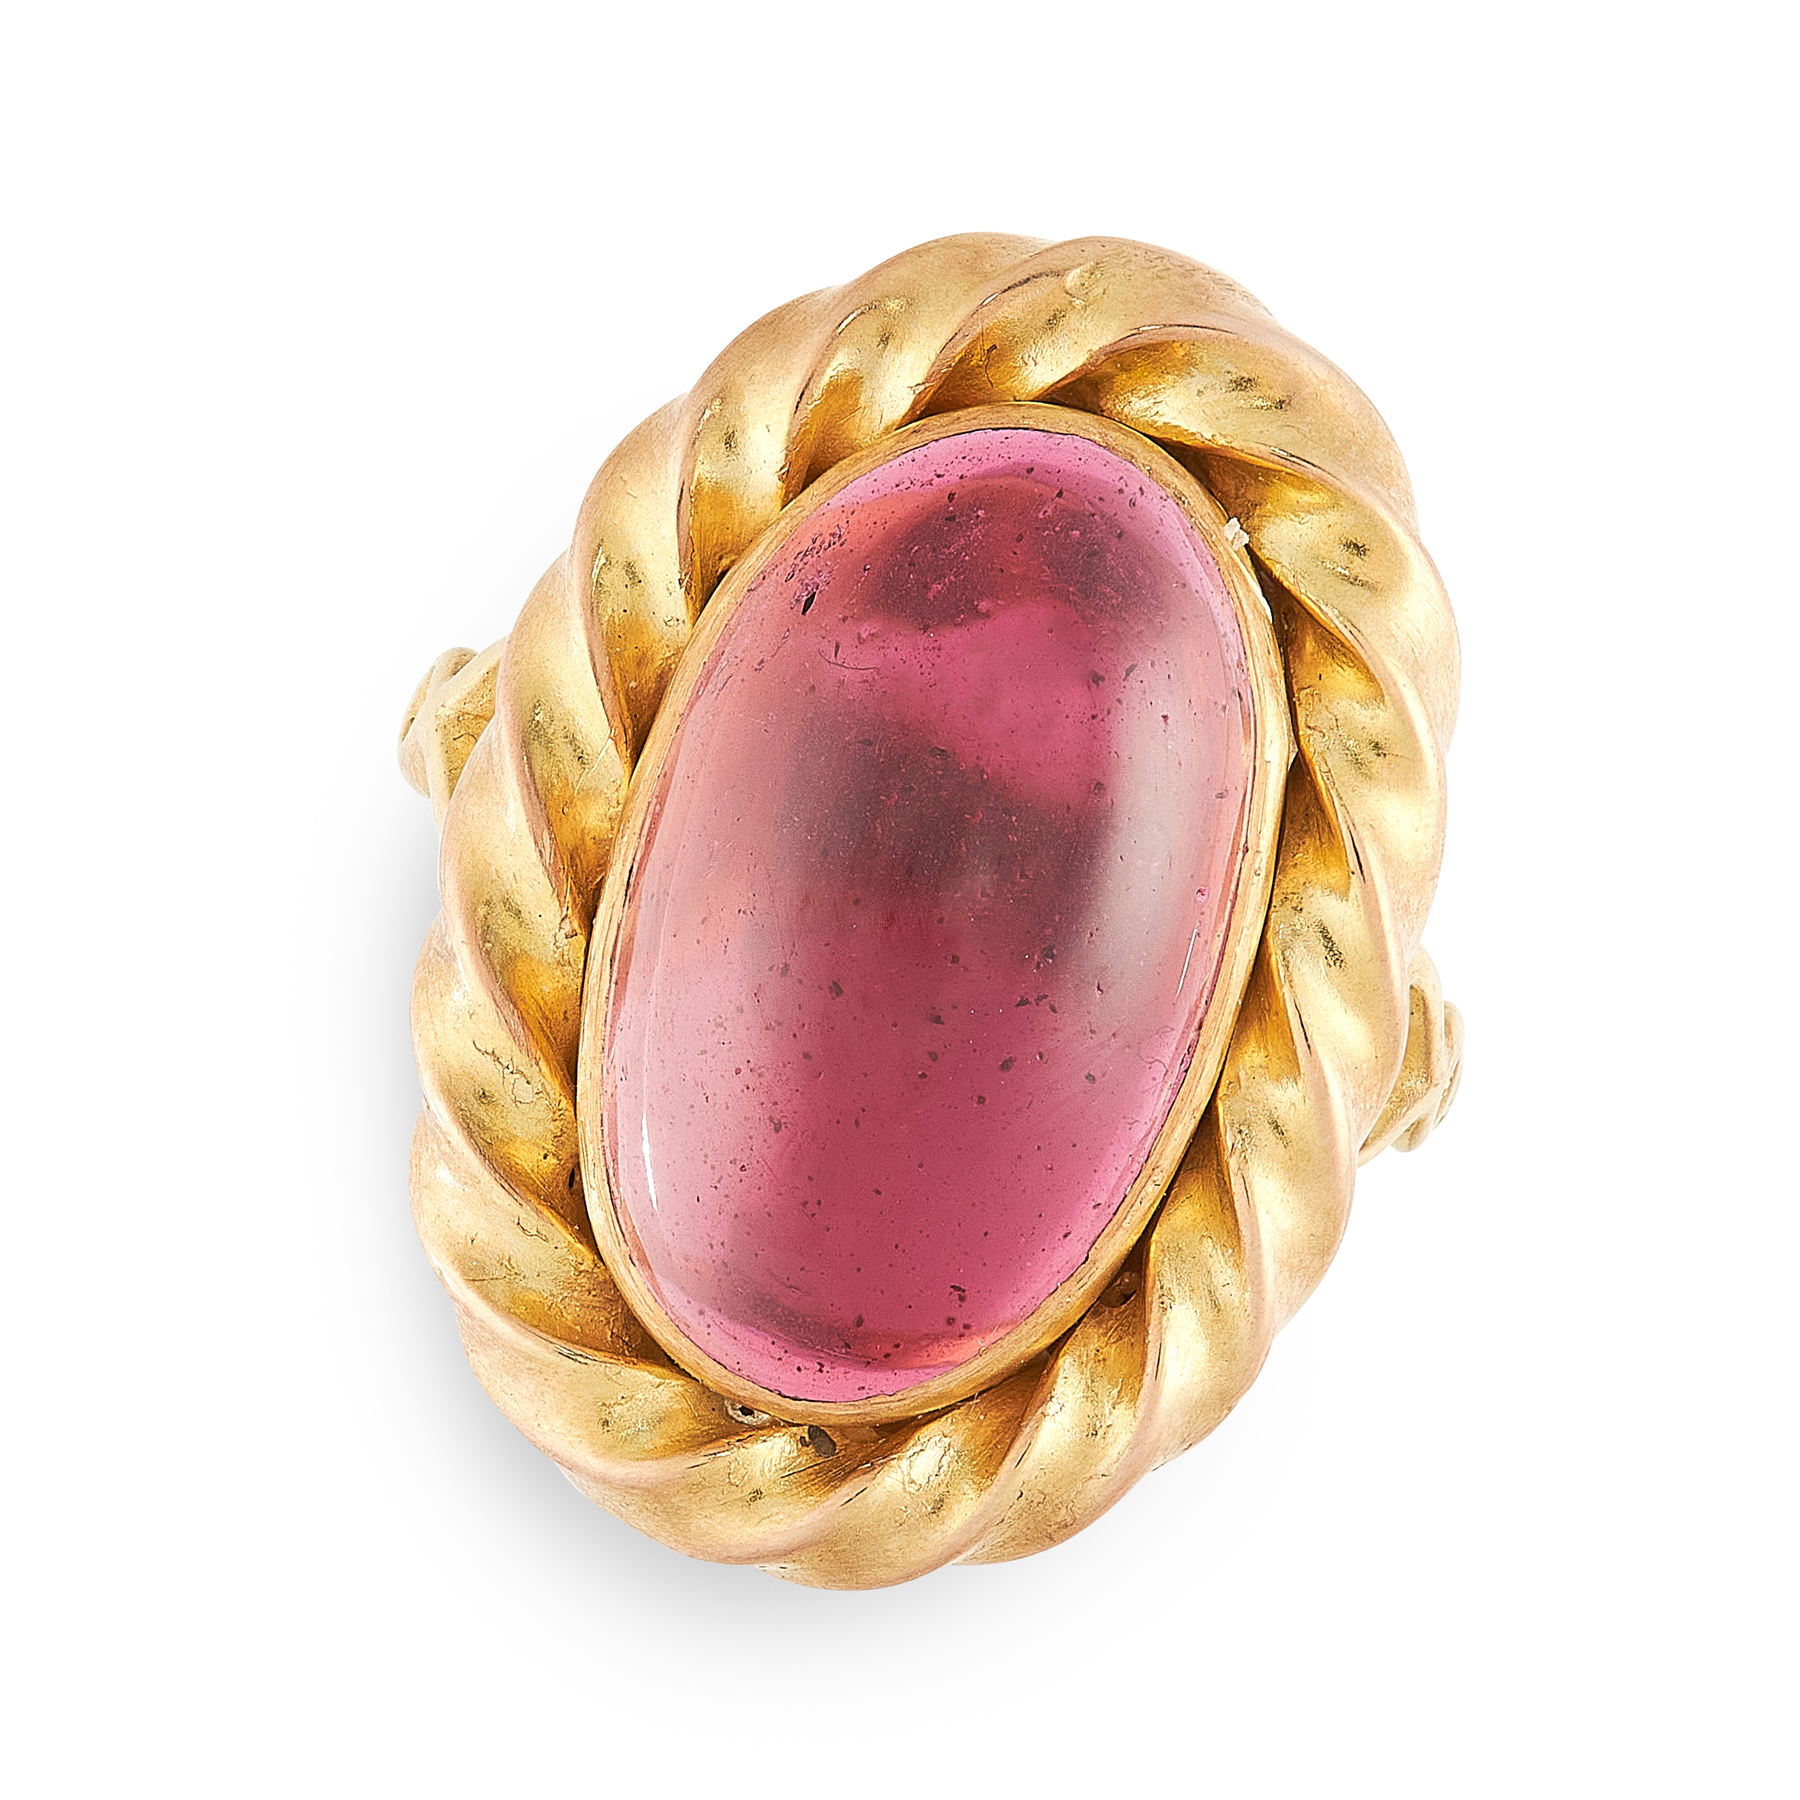 A GARNET DRESS RING in high carat yellow gold, set with a cabochon garnet in a twisted gold